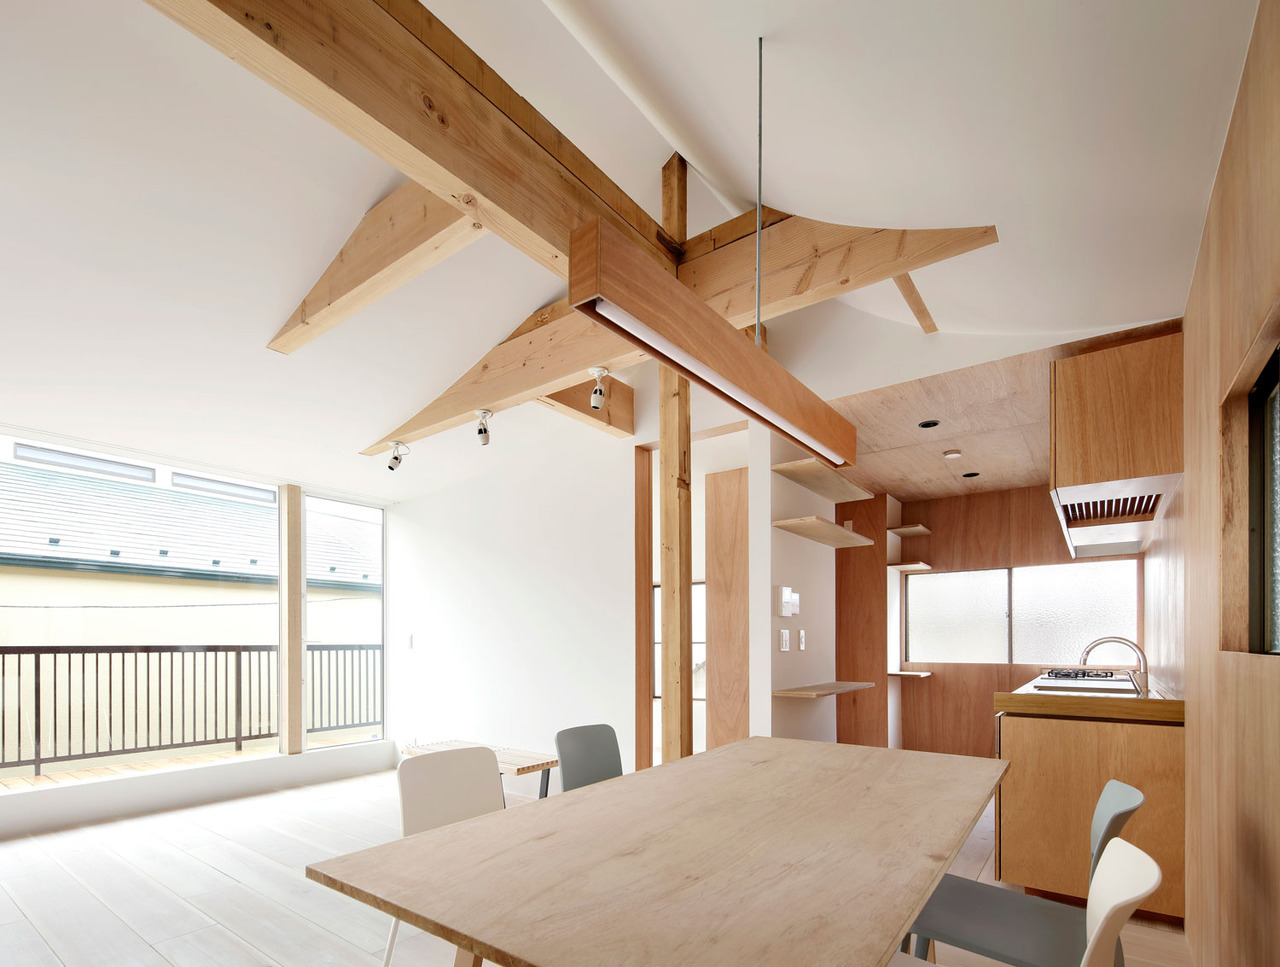 How to choose a comfortable home from laminated veneer lumber 70